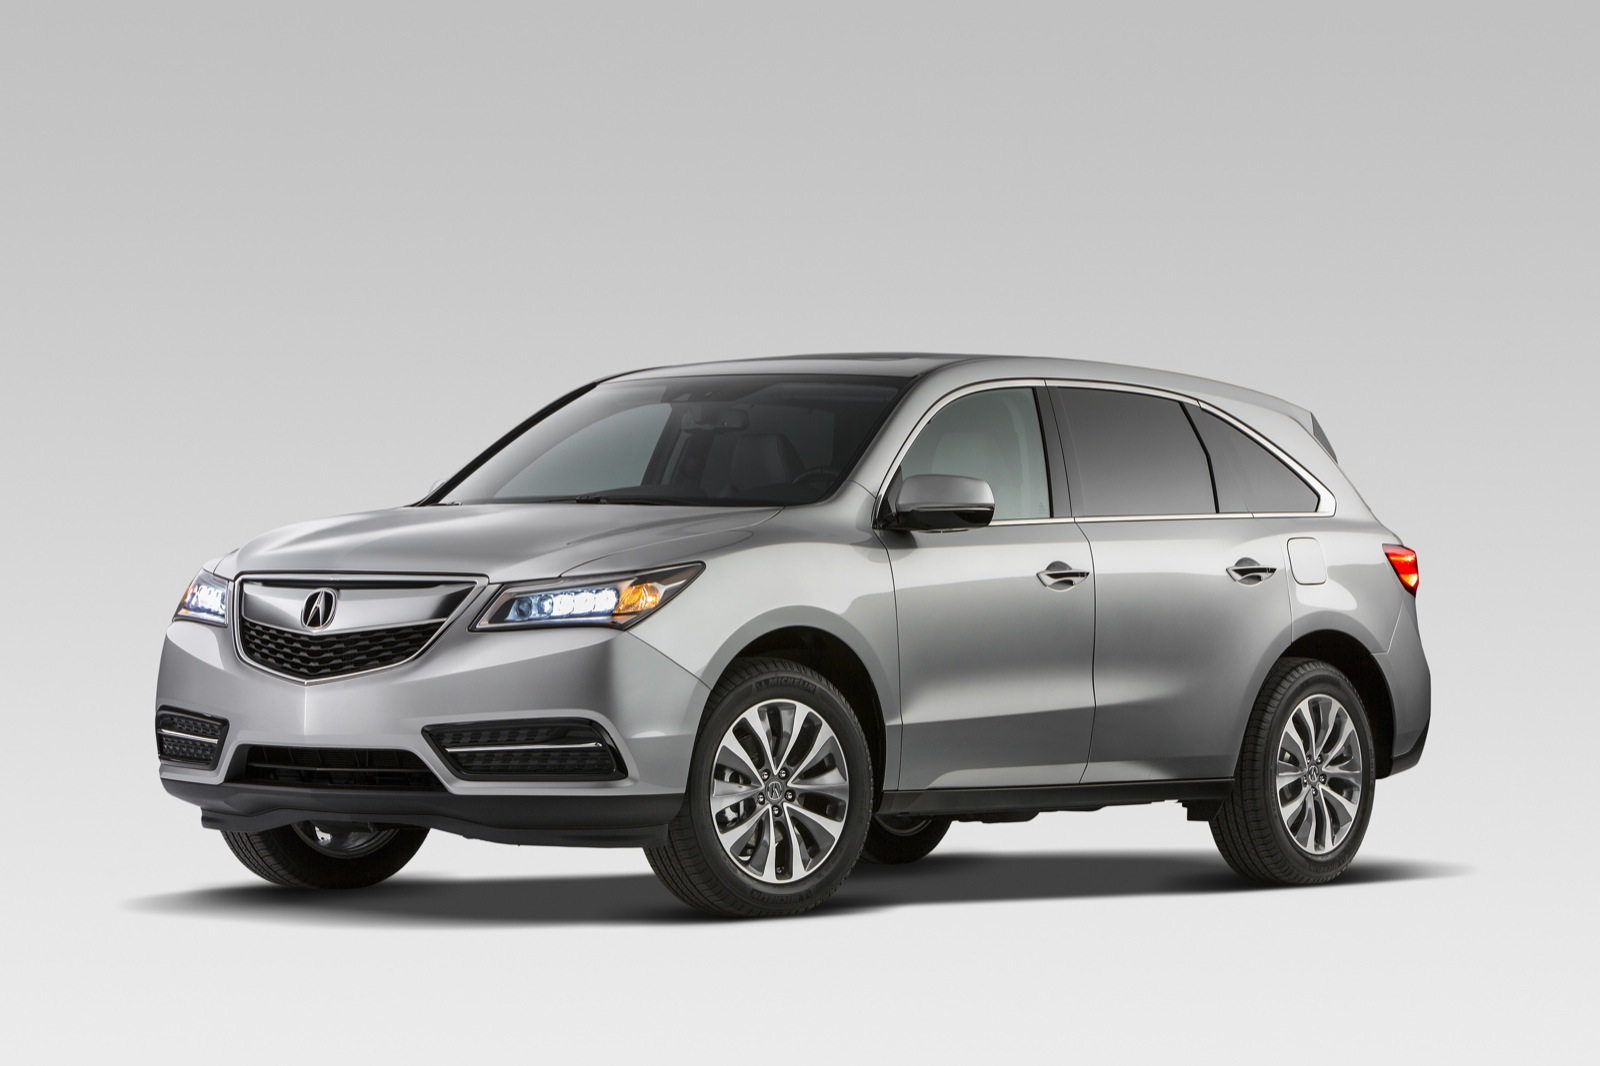 2014 Acura MDX Review, Ratings, Specs, Prices, and Photos - The Car Connection